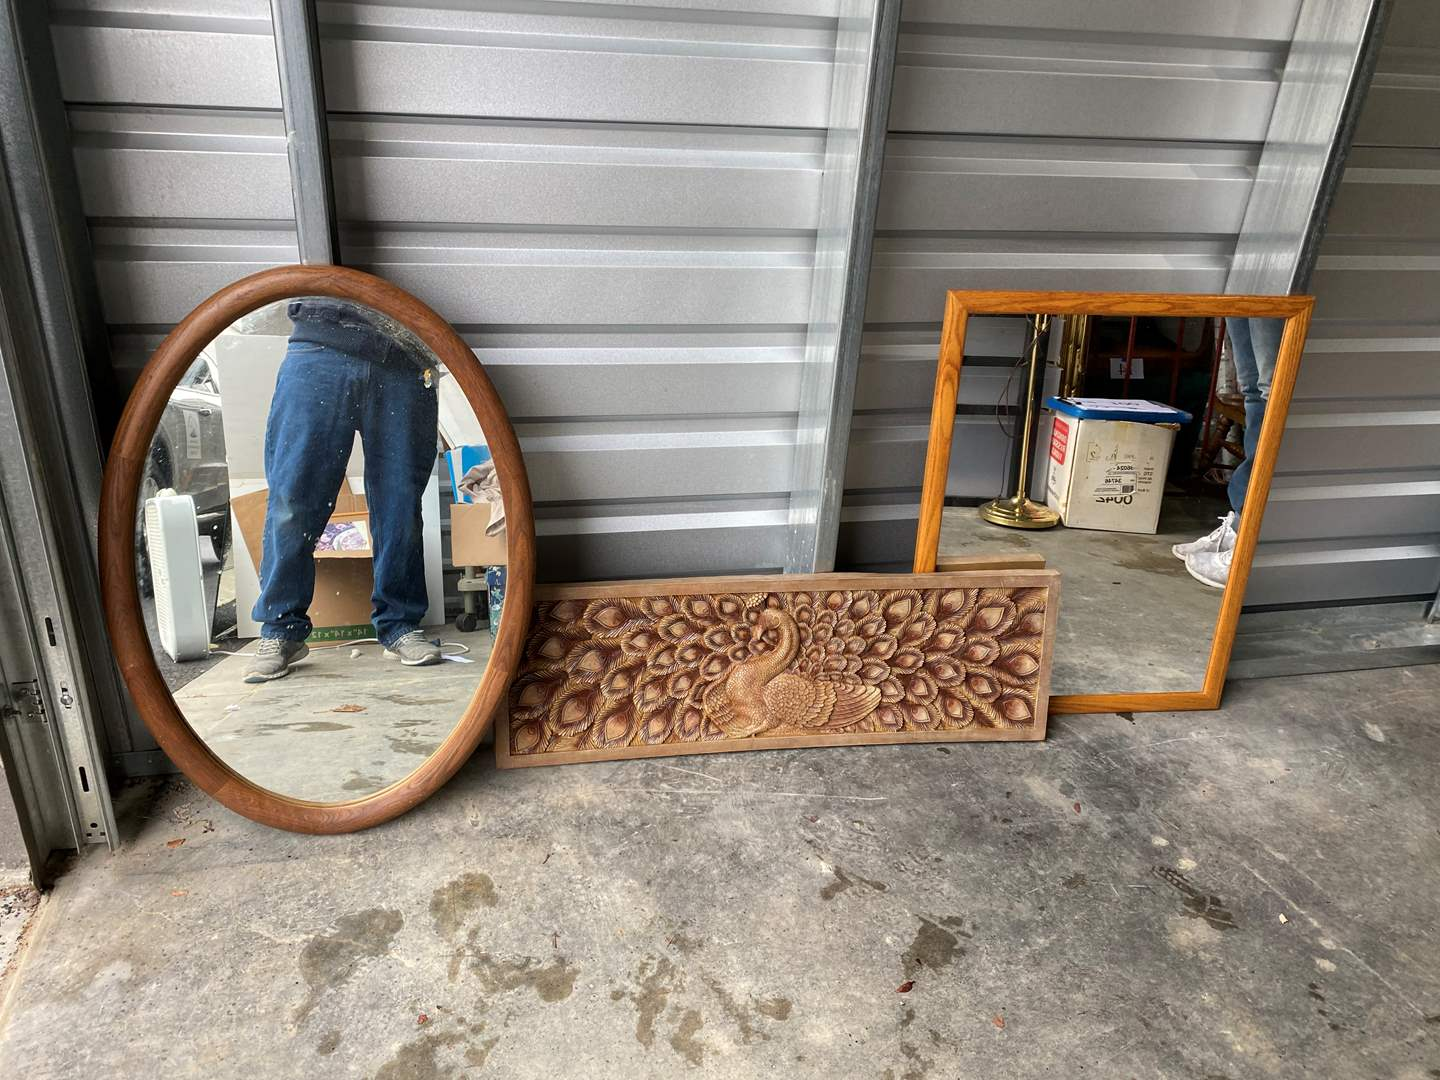 Lot # 36 - Two Framed Mirrors with a Nice Piece of Resin Peacock Wall Art. (main image)